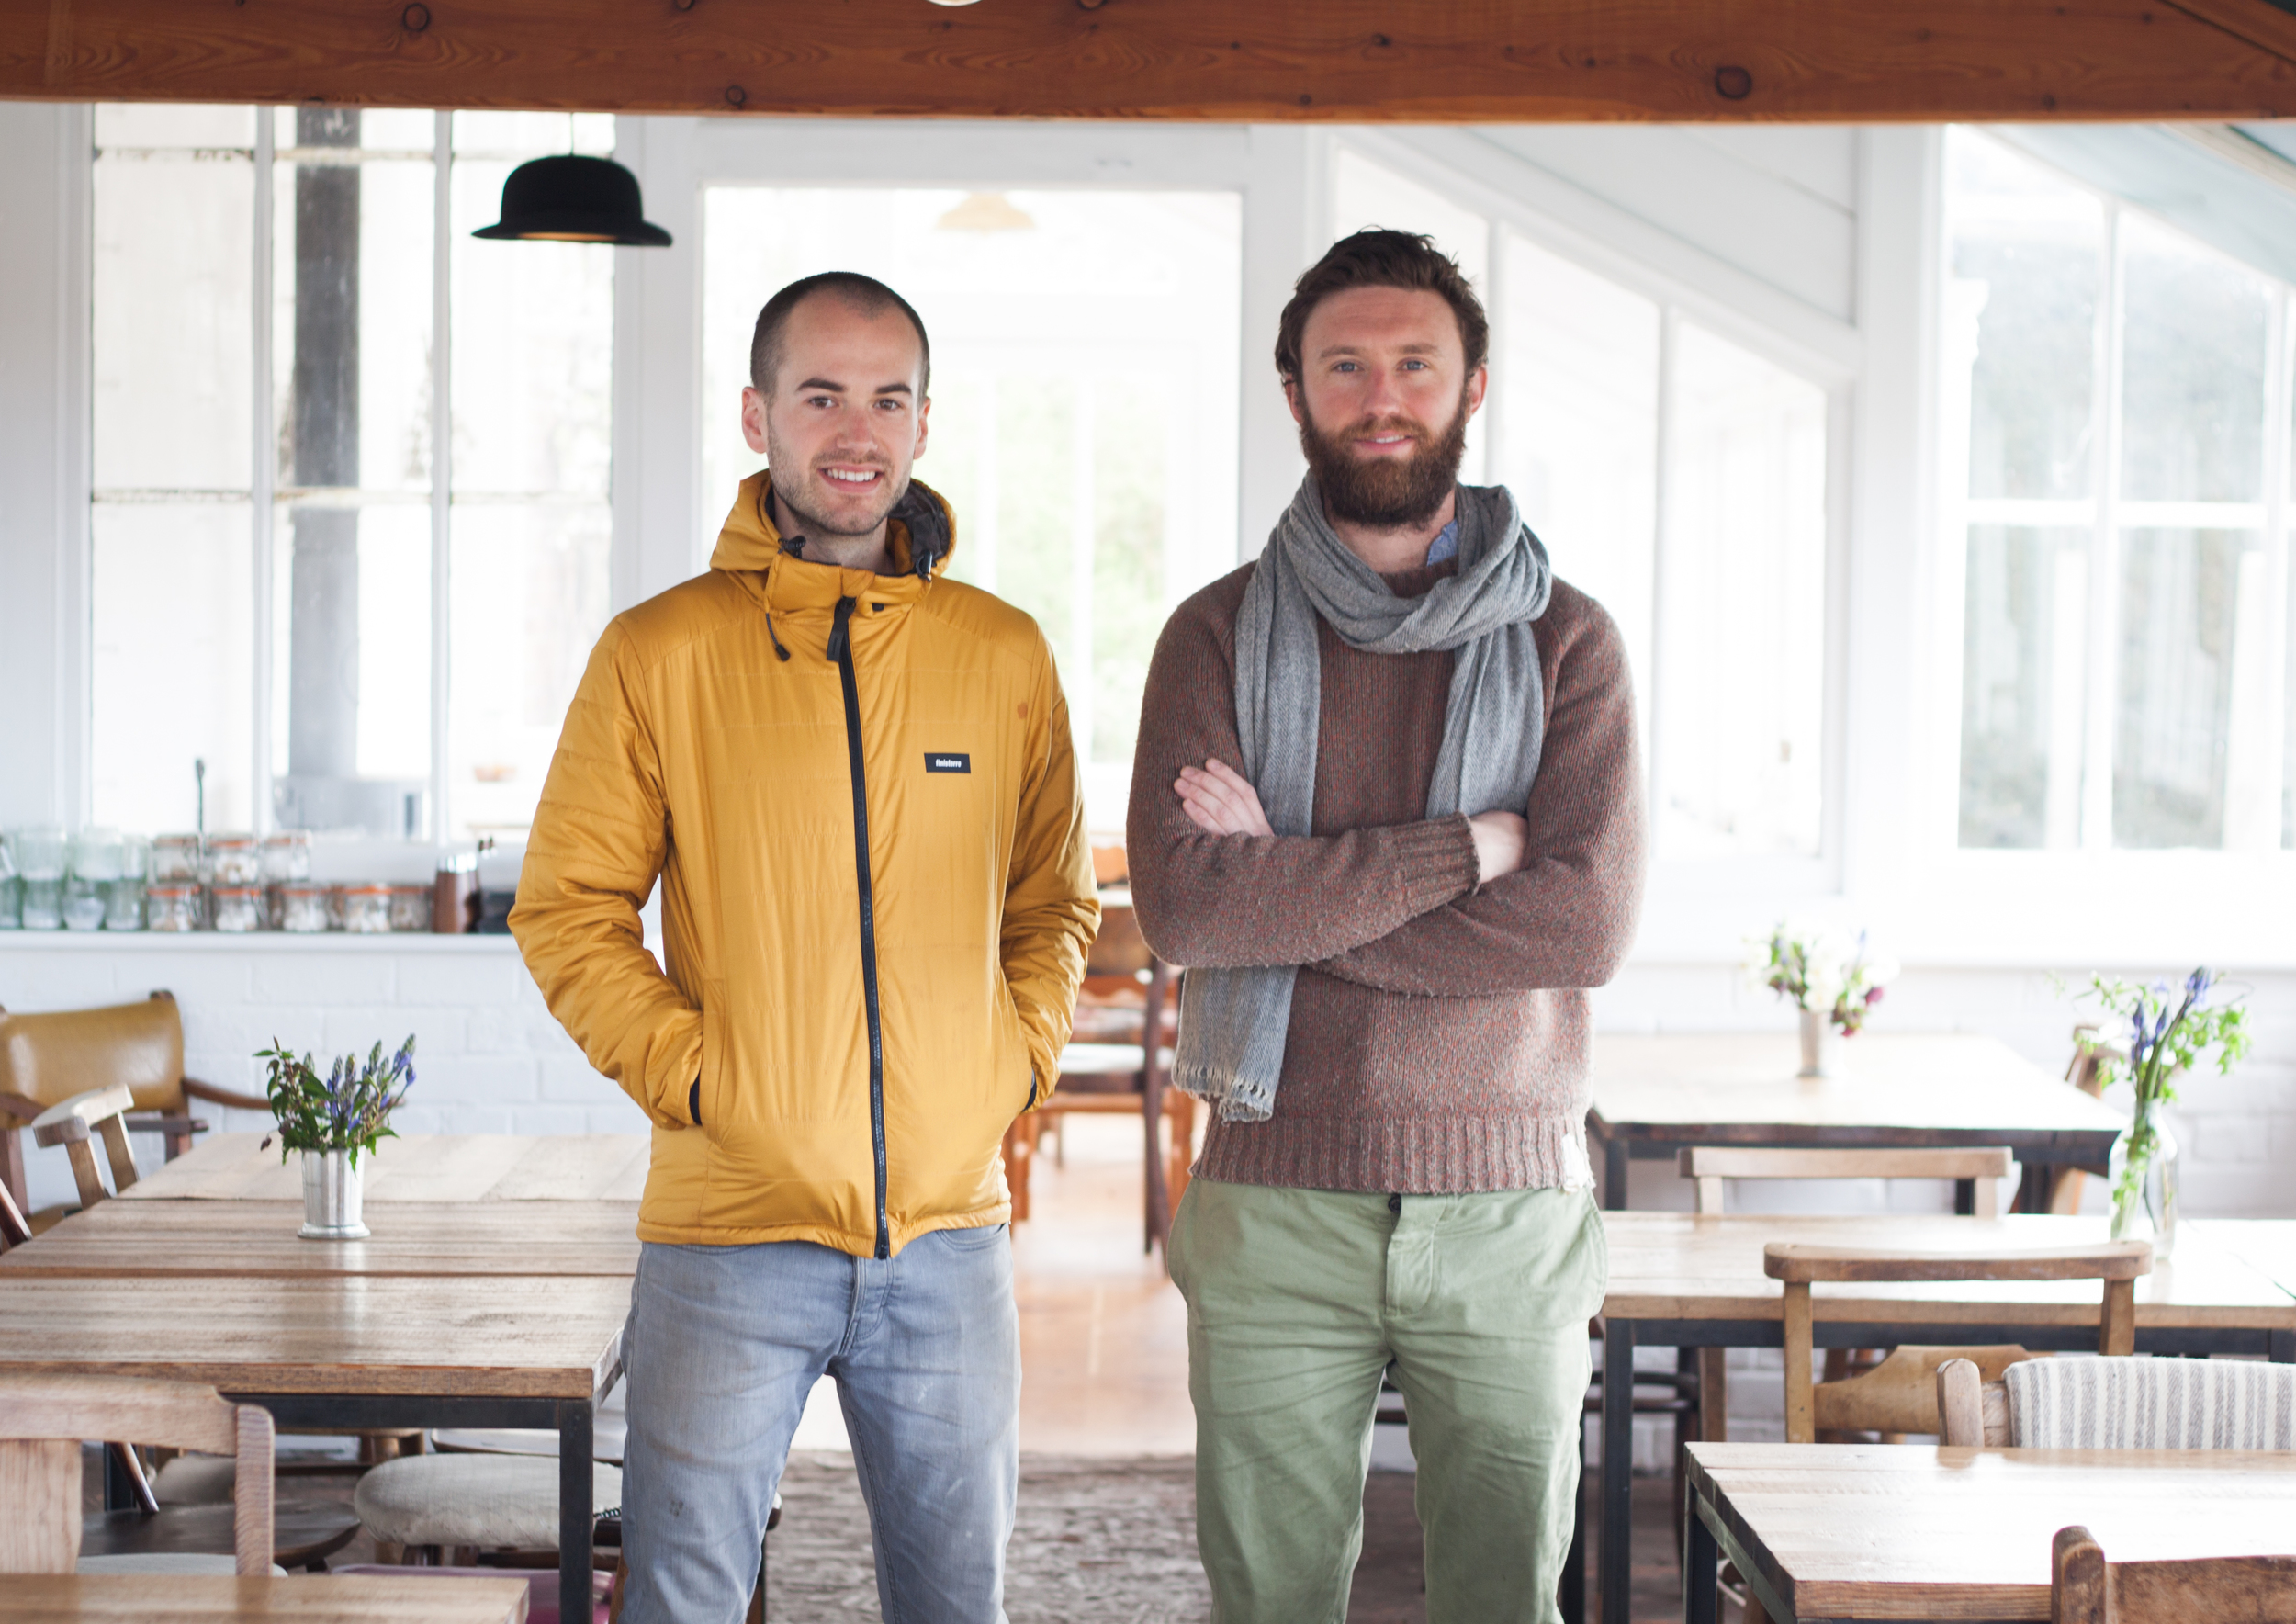 Iain and Jack - The Ethicurean